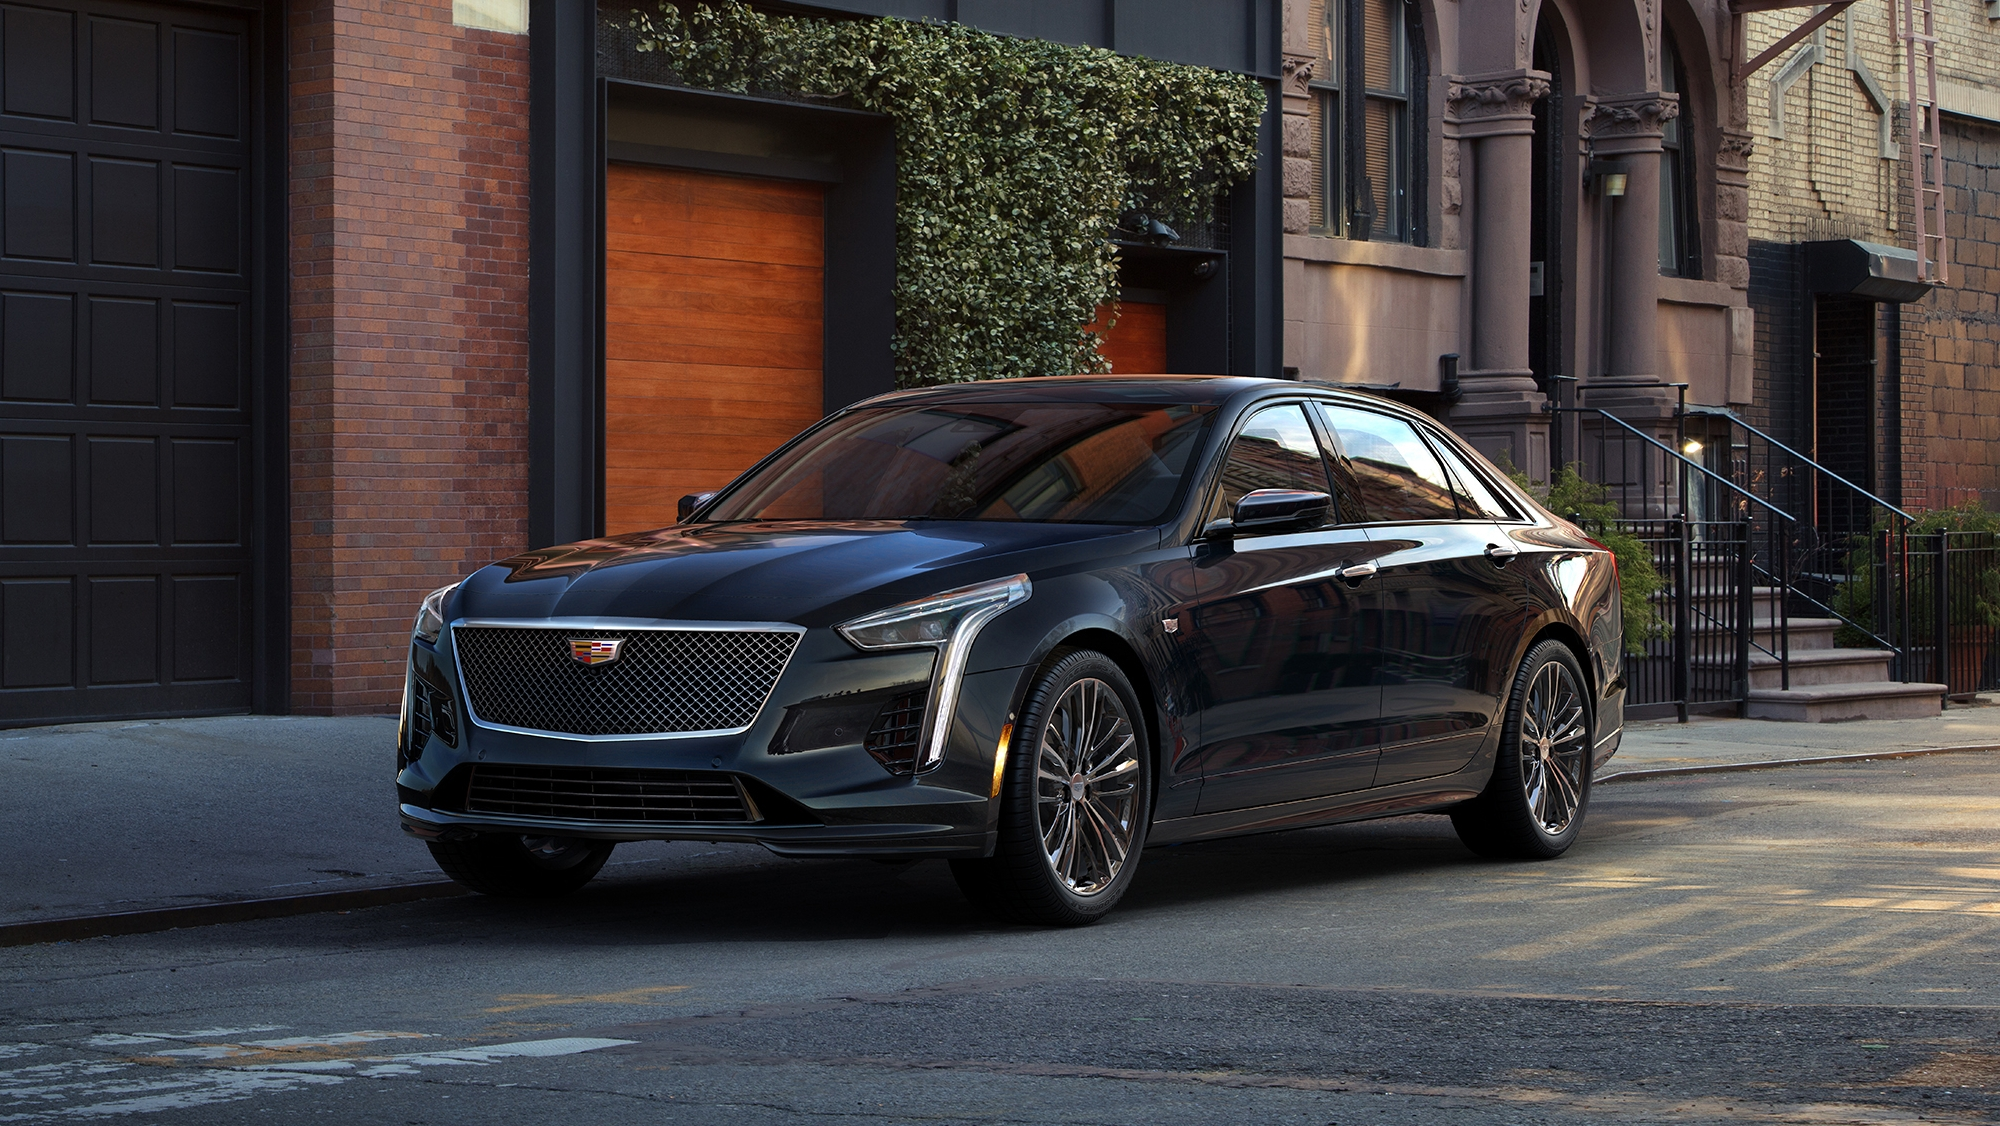 2019 cadillac ct6 v-sport | top speed